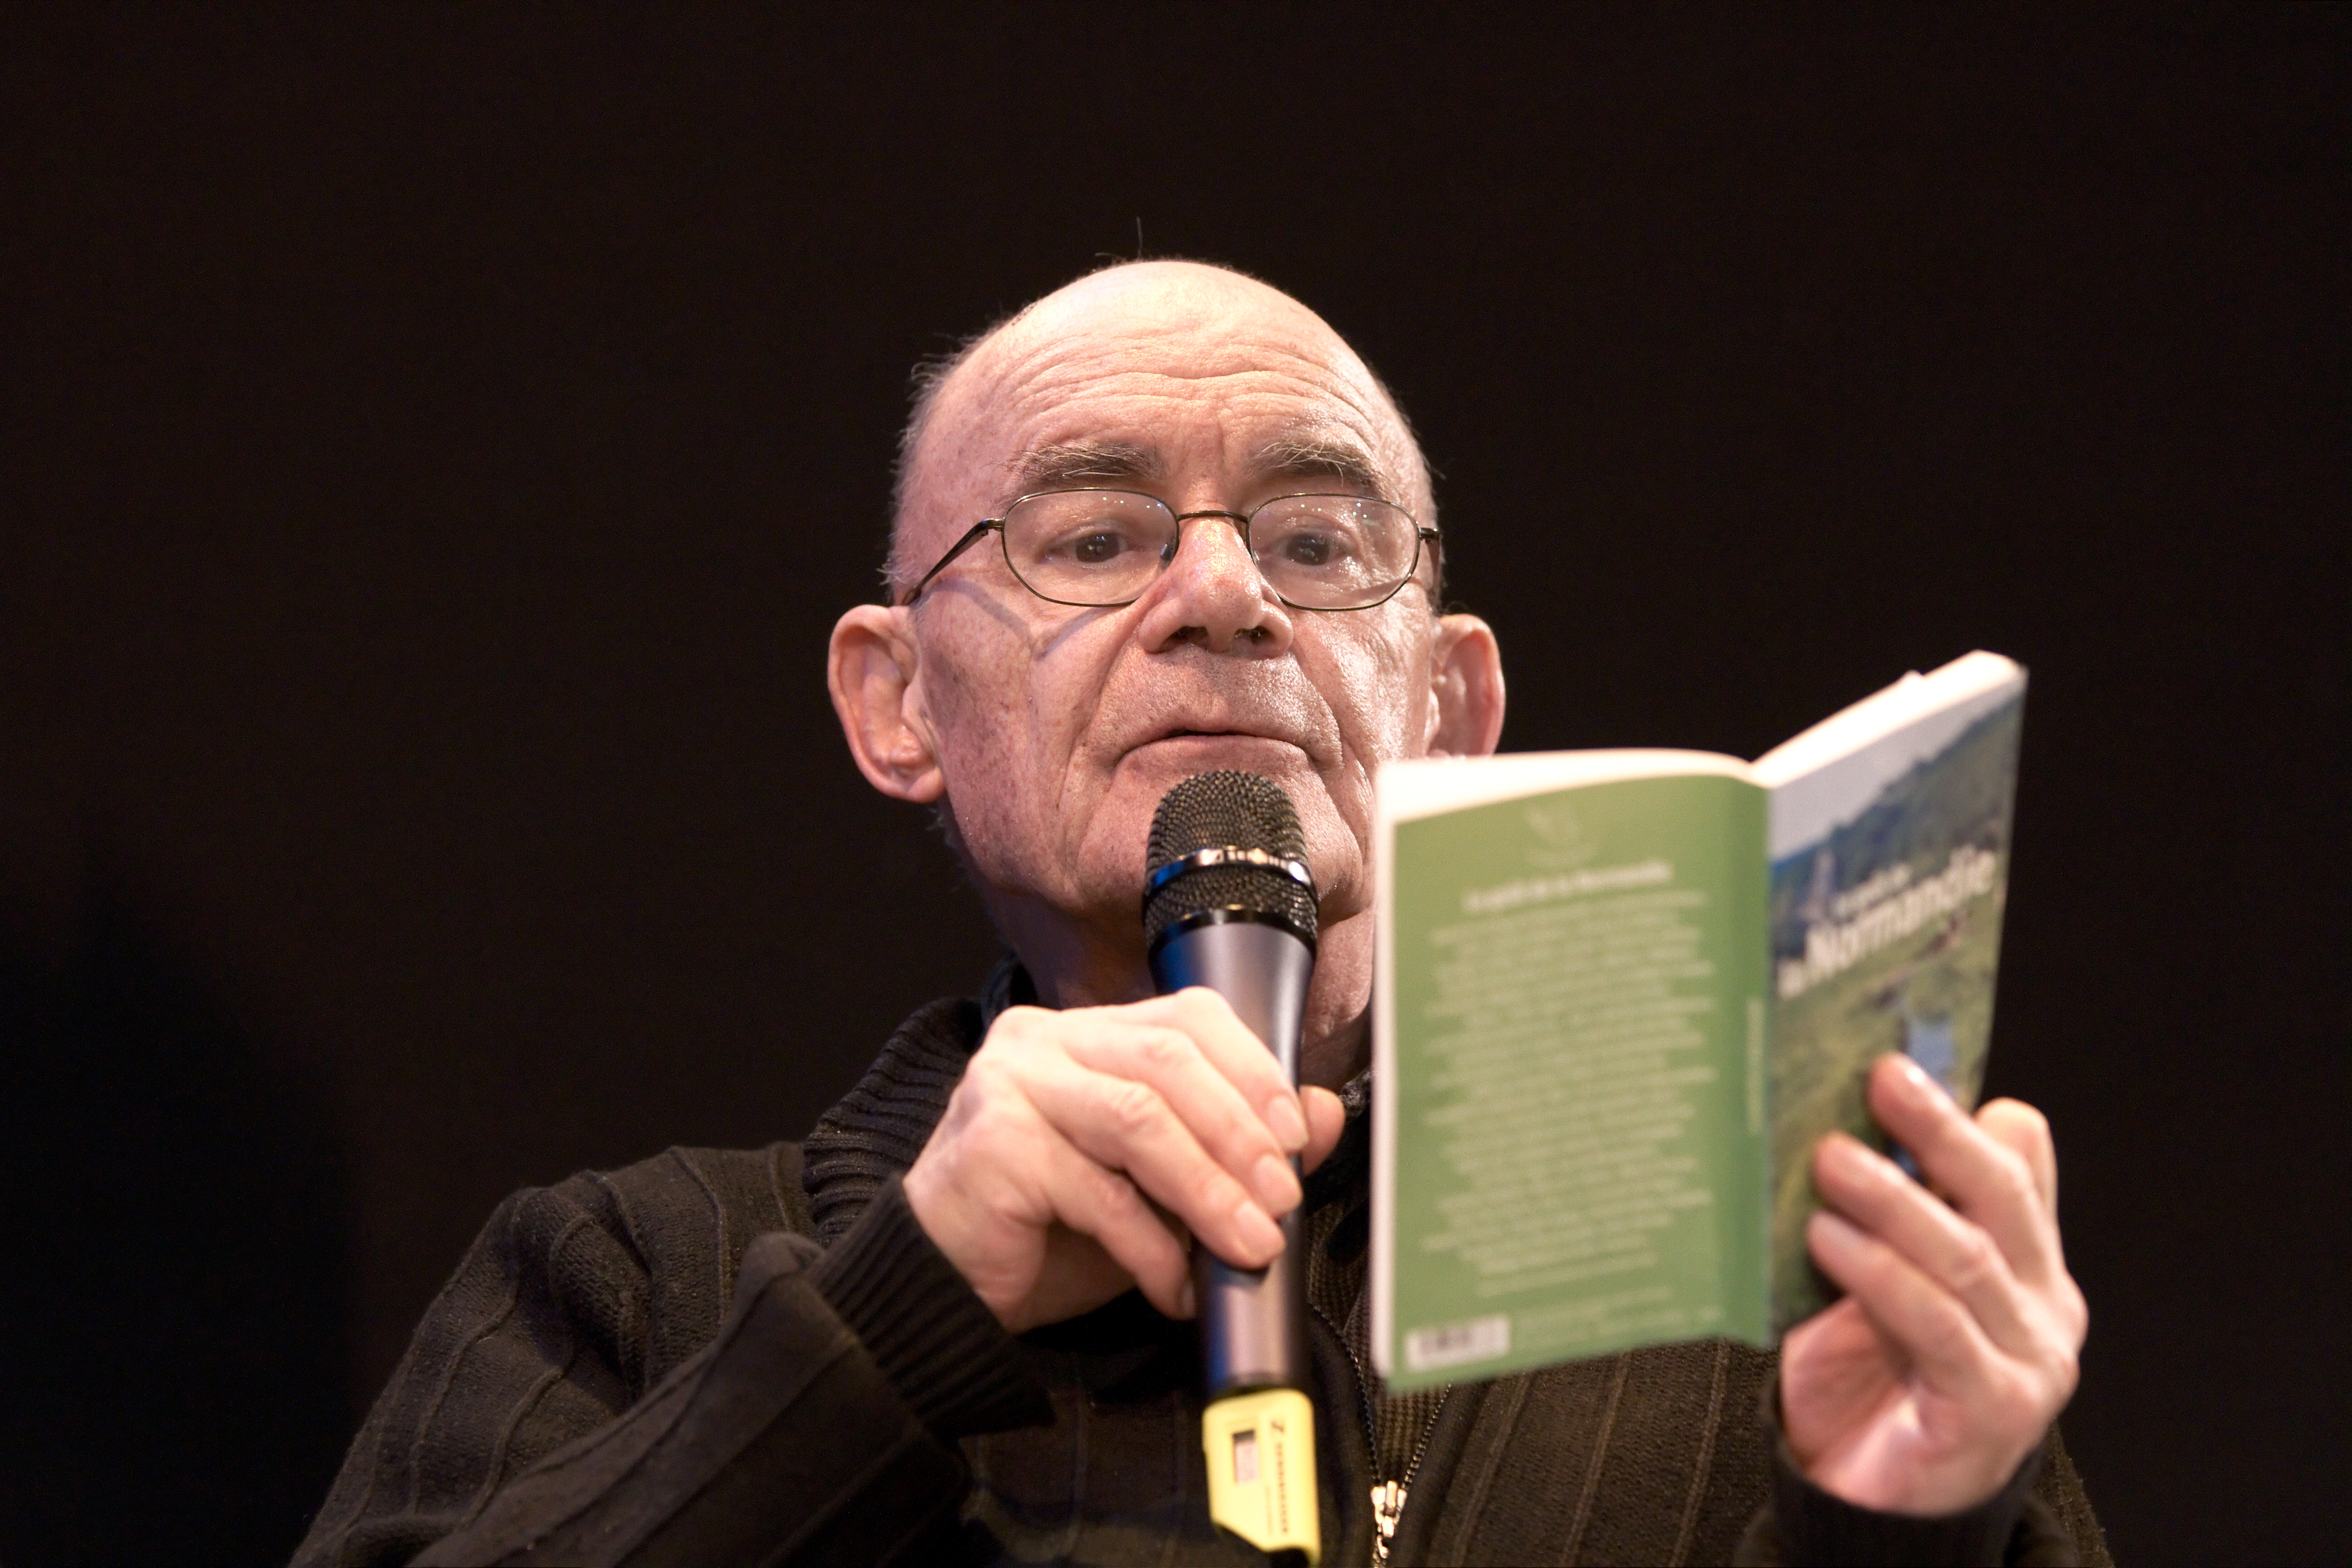 http://upload.wikimedia.org/wikipedia/commons/a/ac/Jean-Luc_Nancy_20100328_Salon_du_livre_de_Paris_2.jpg